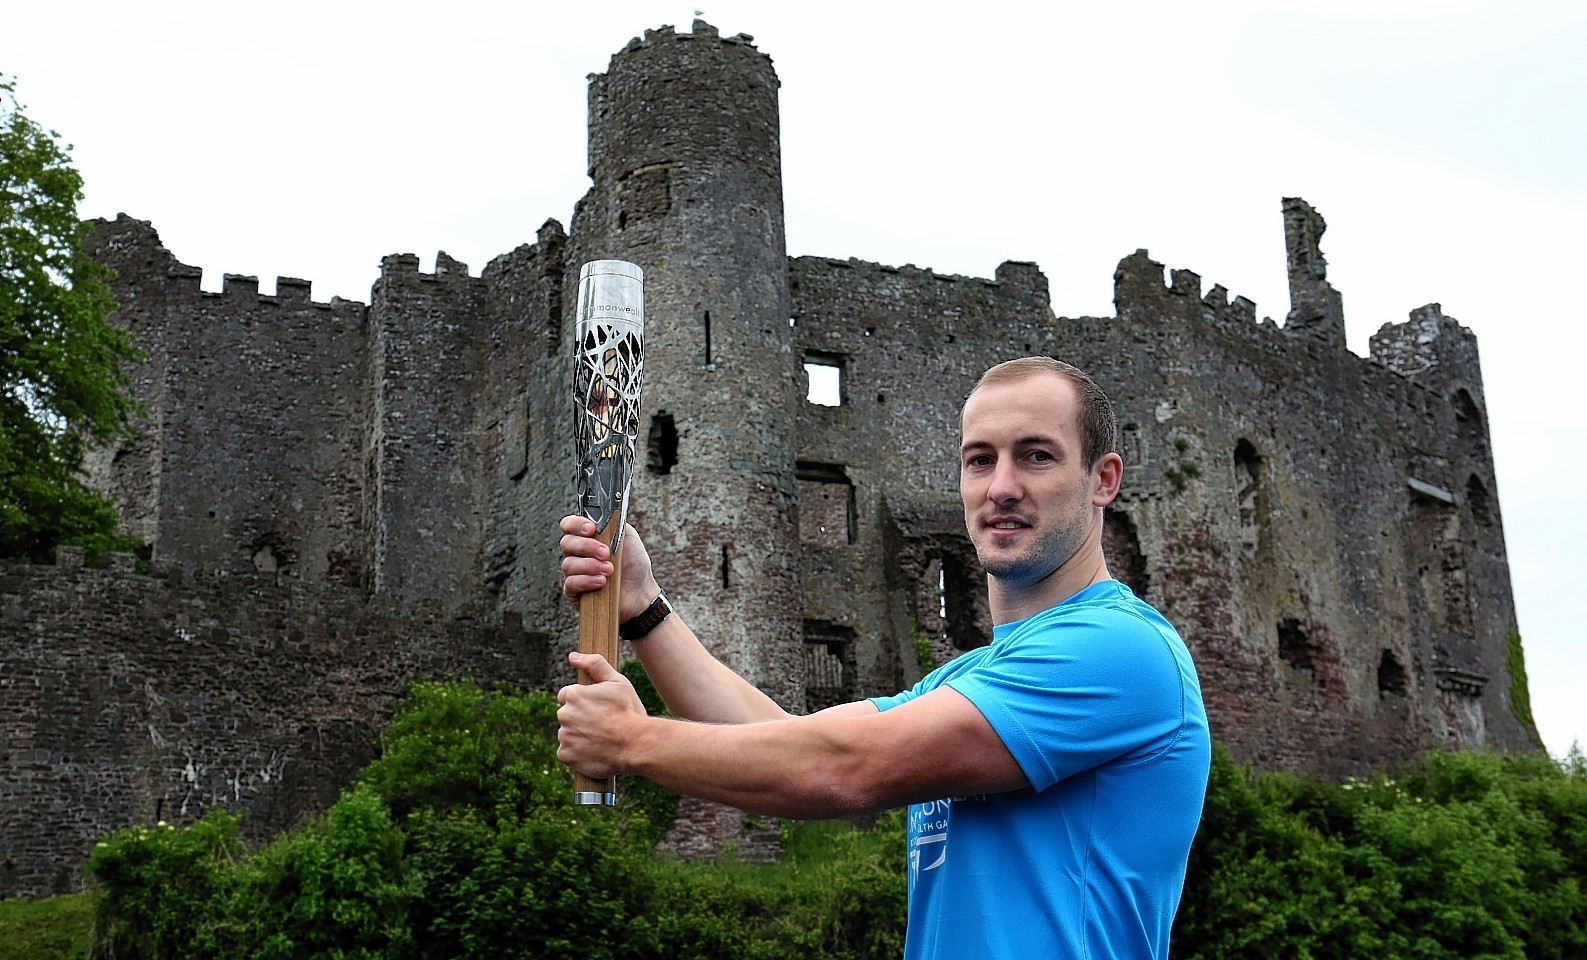 Queen's Baton relay of Baton Bearer Lee Williams holding the Queen's Baton Laugharne Castle in Wales. Wales is nation 68 of 70 nations and territories the Queen's Baton will visit